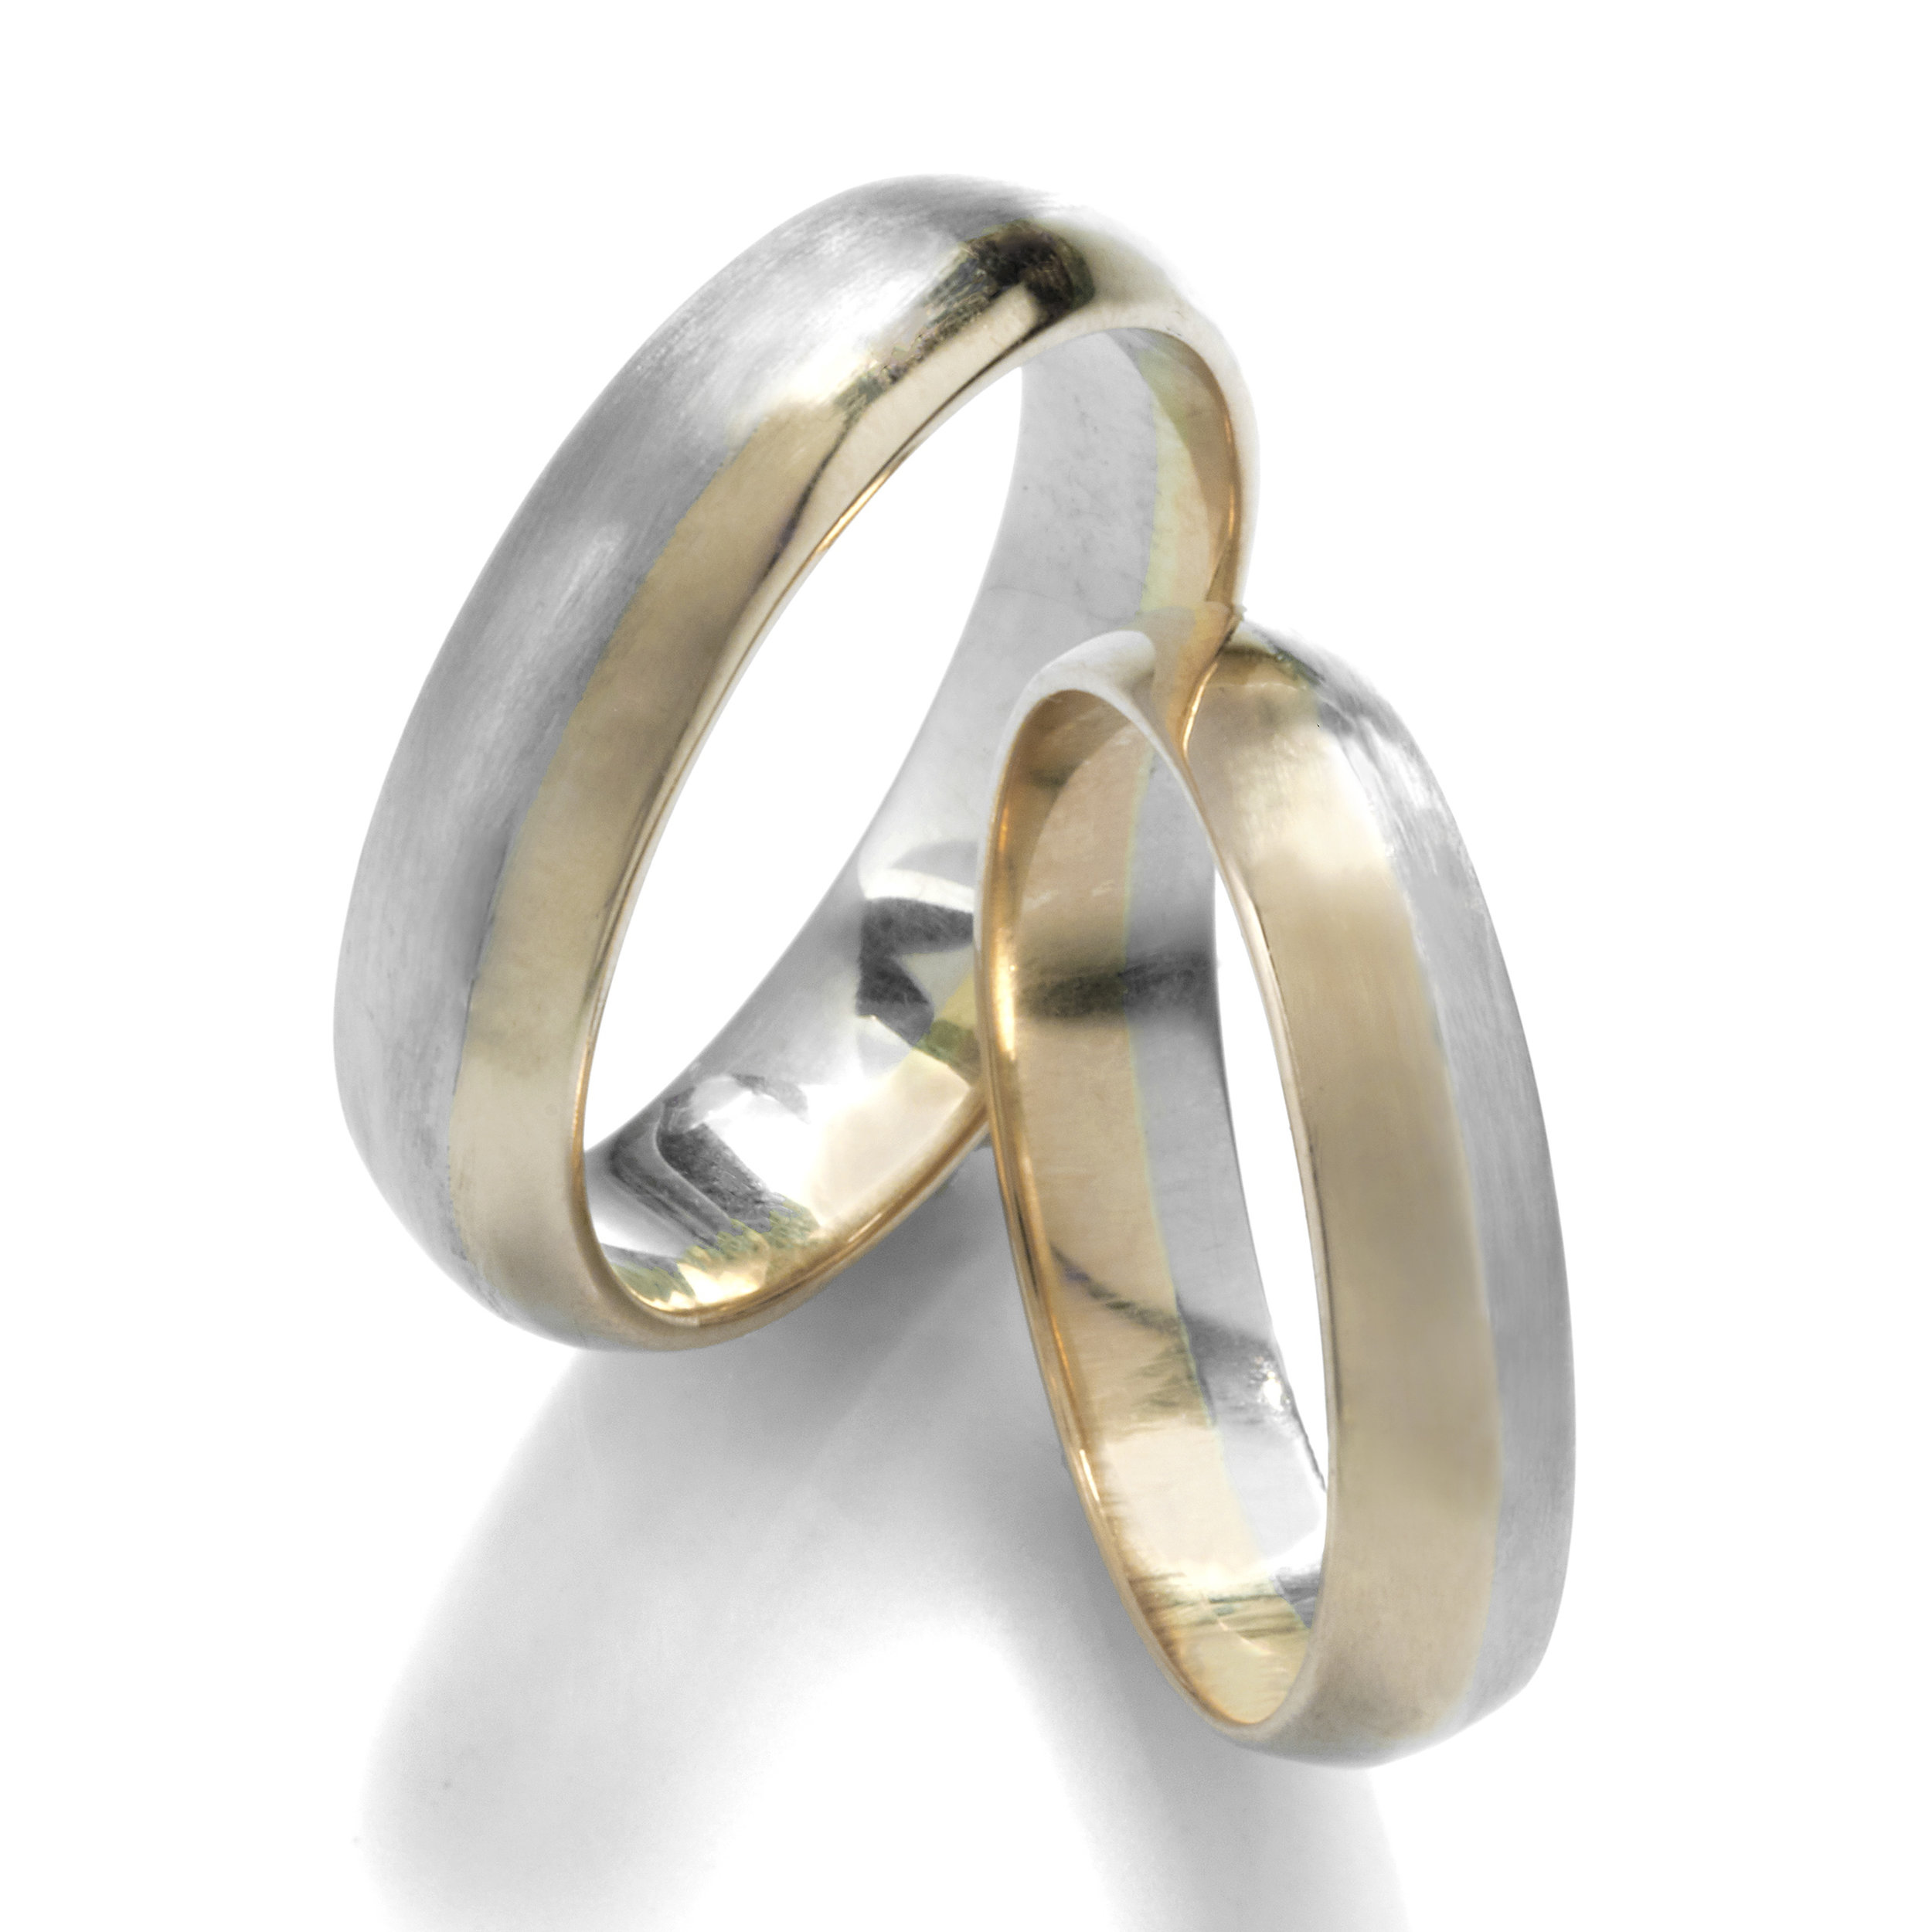 Golden Ratio Inlay Wedding Bands.jpg